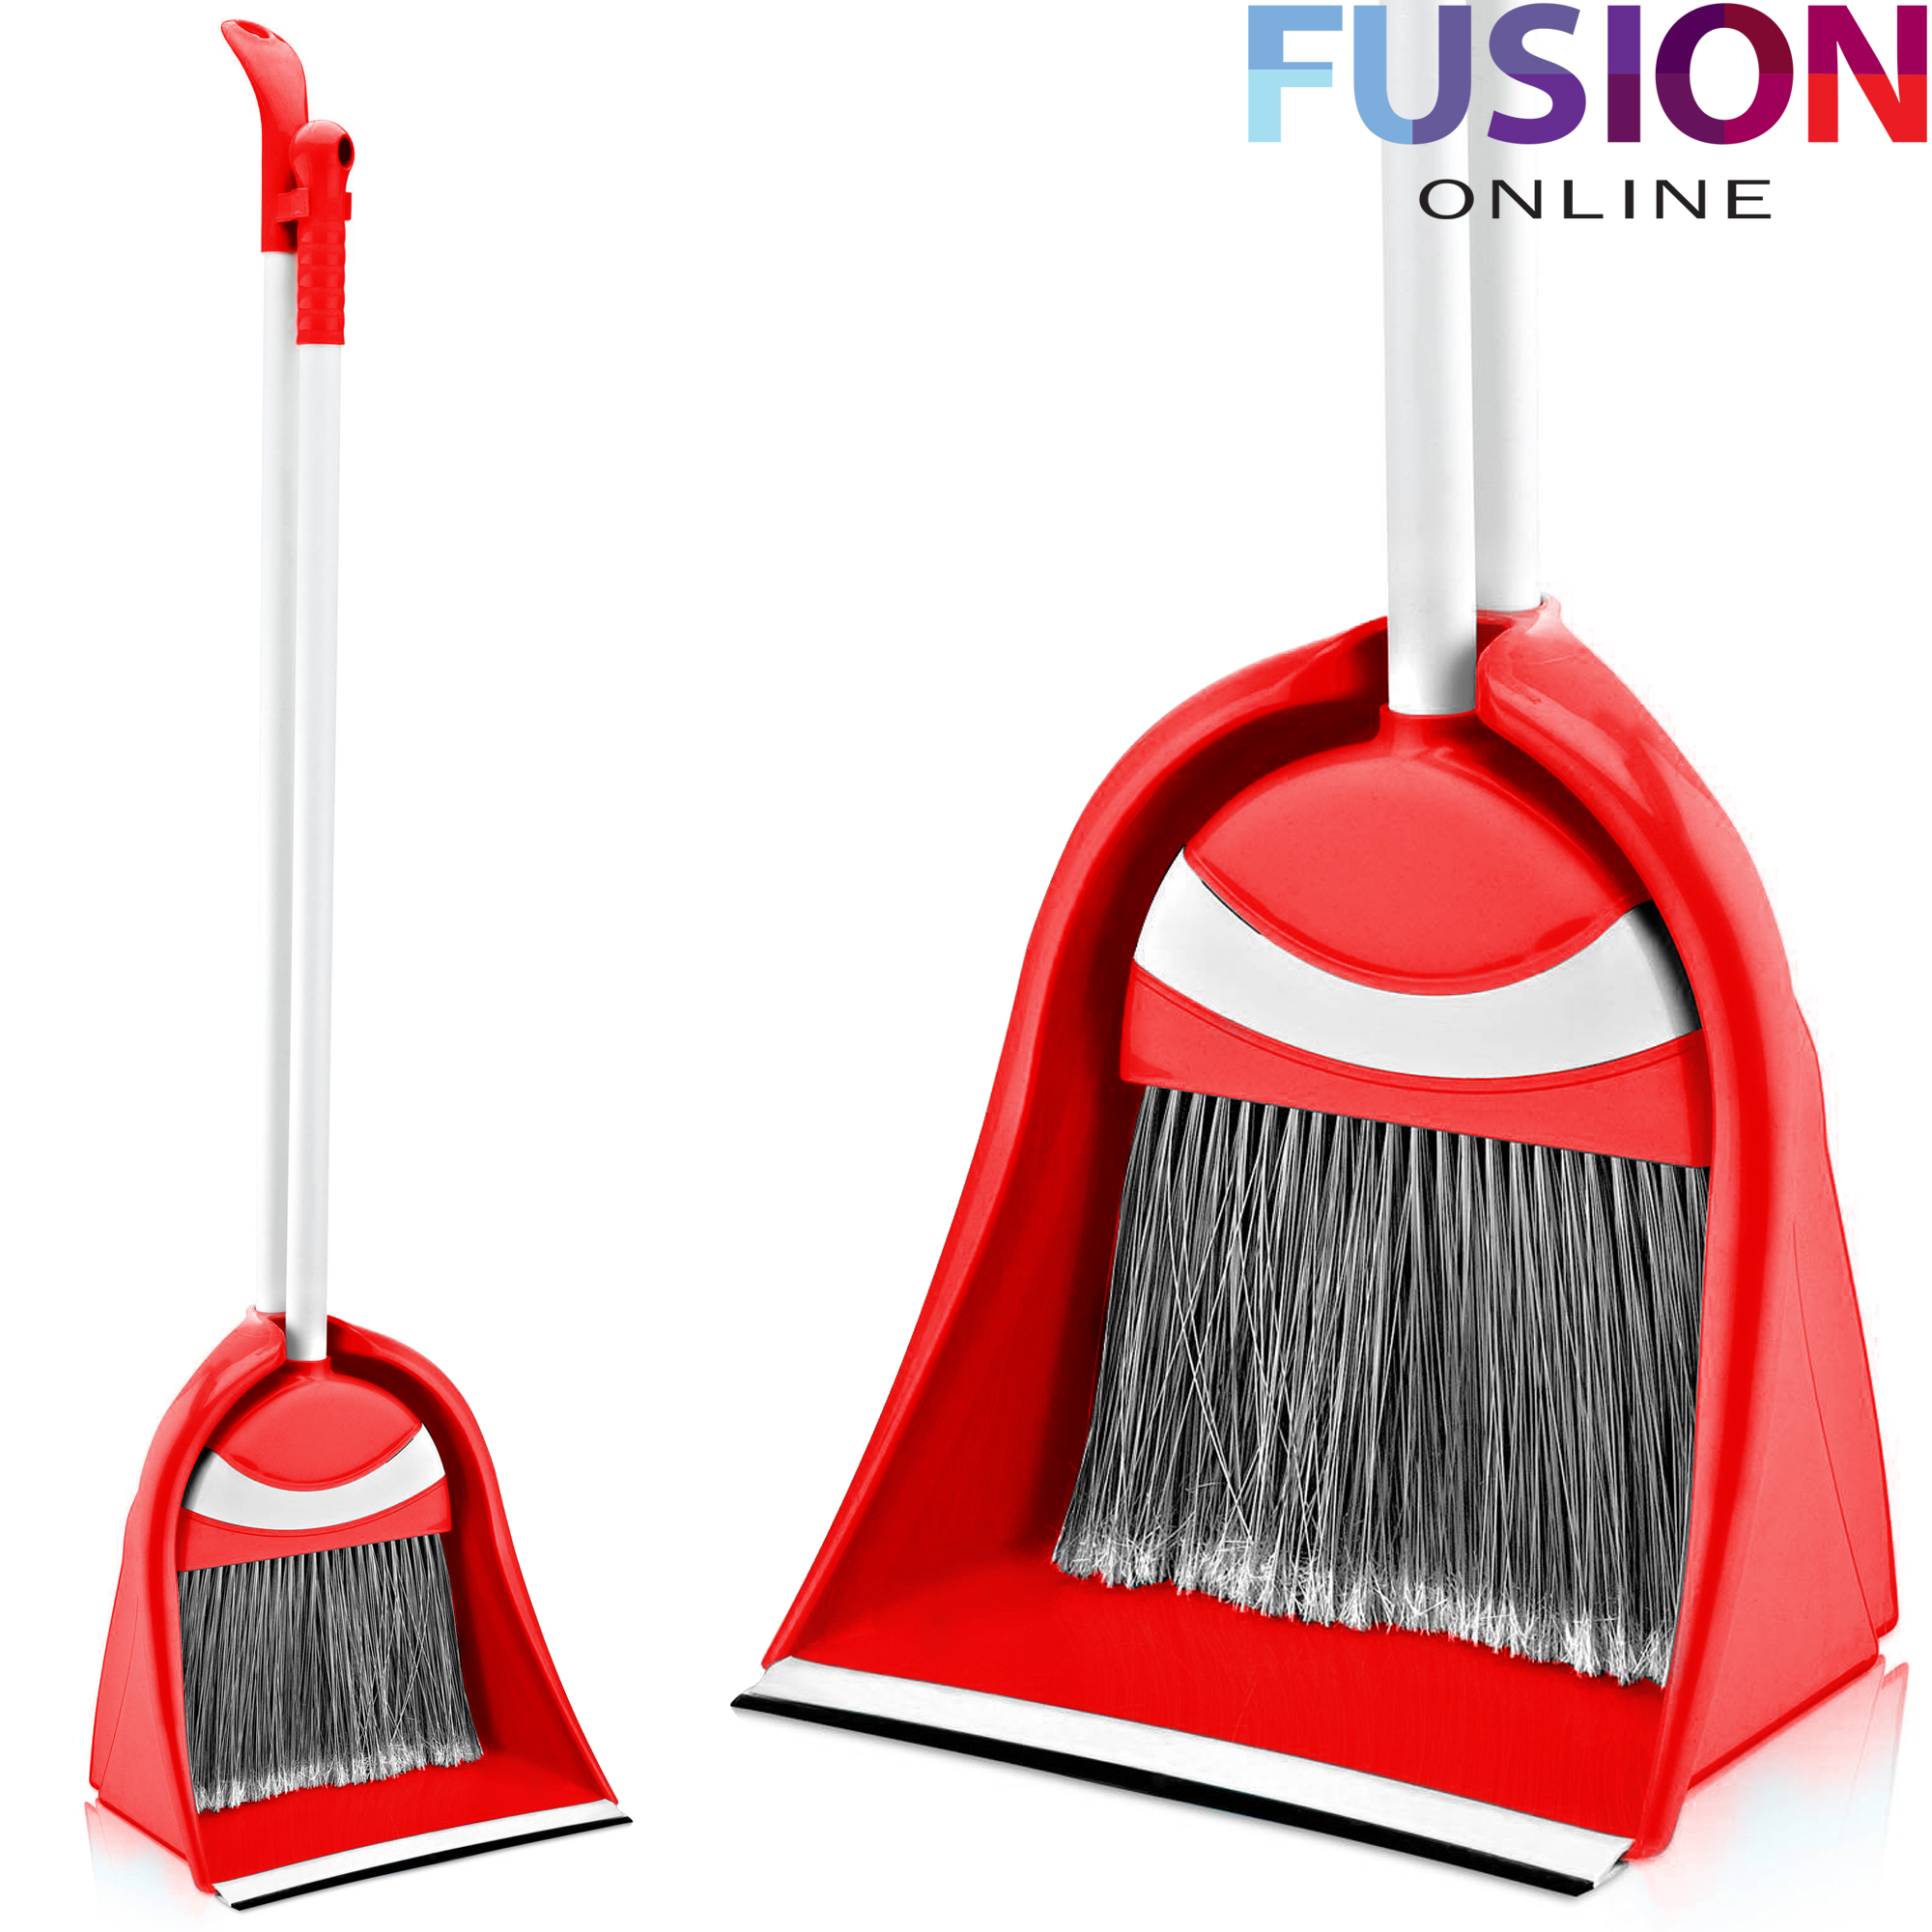 New Long Handle Handled Dustpan Dust Pan And With Brush